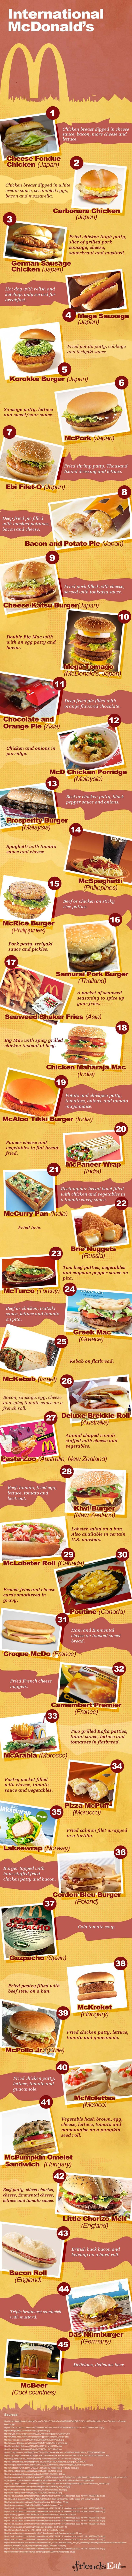 International McDonald (Infographic) why don't we get to eat such yummy  things